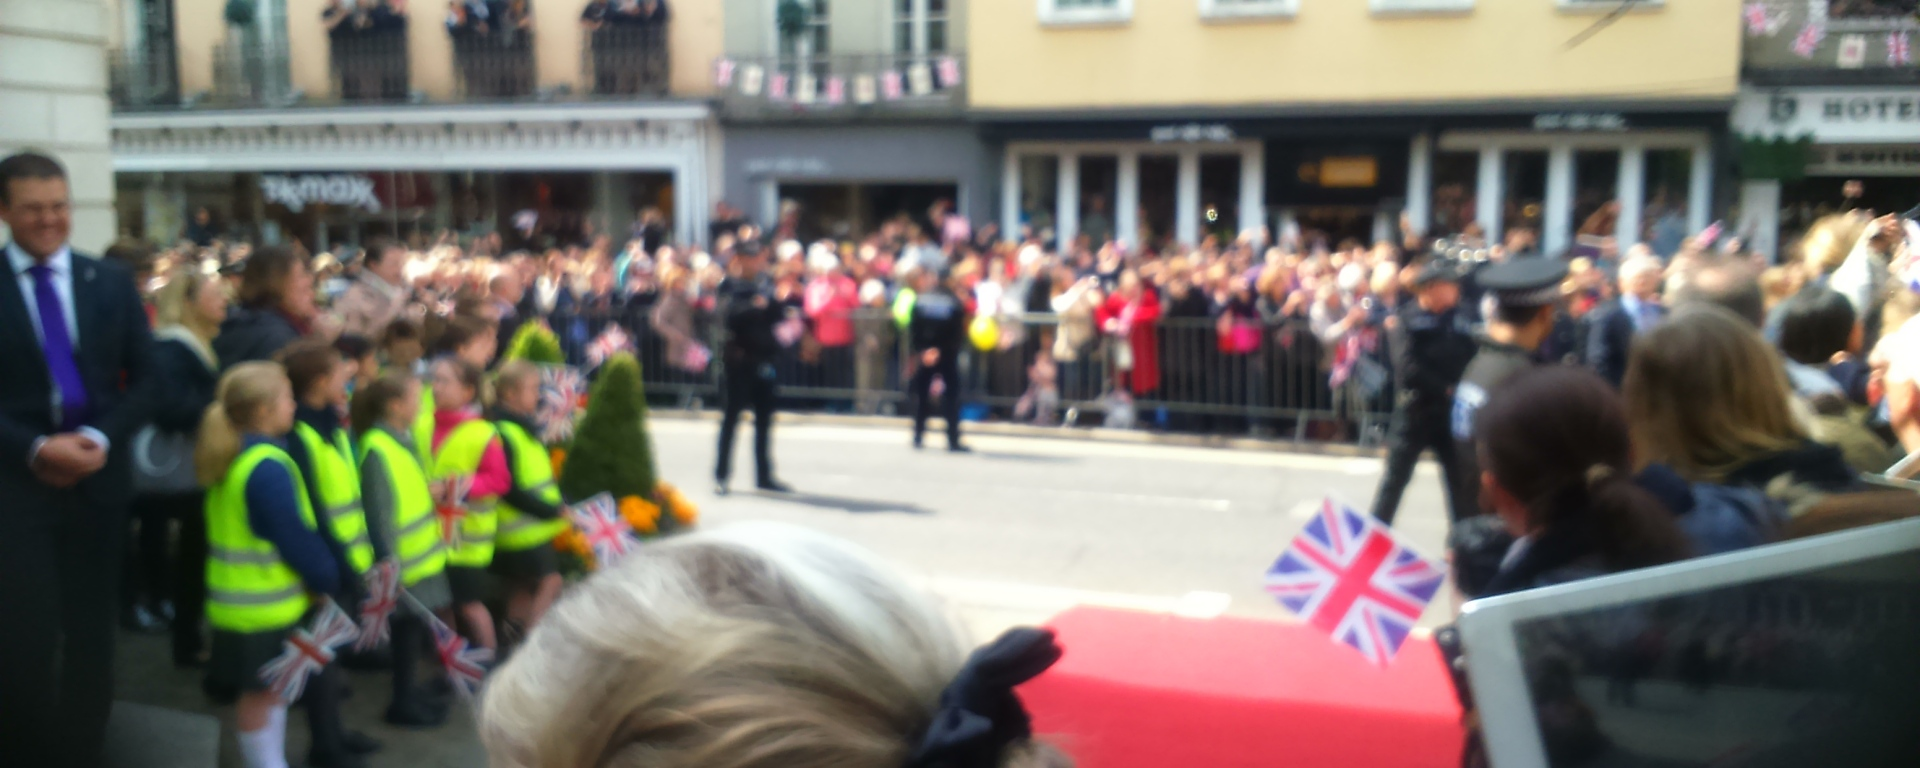 #queenat90 is this real in windsor